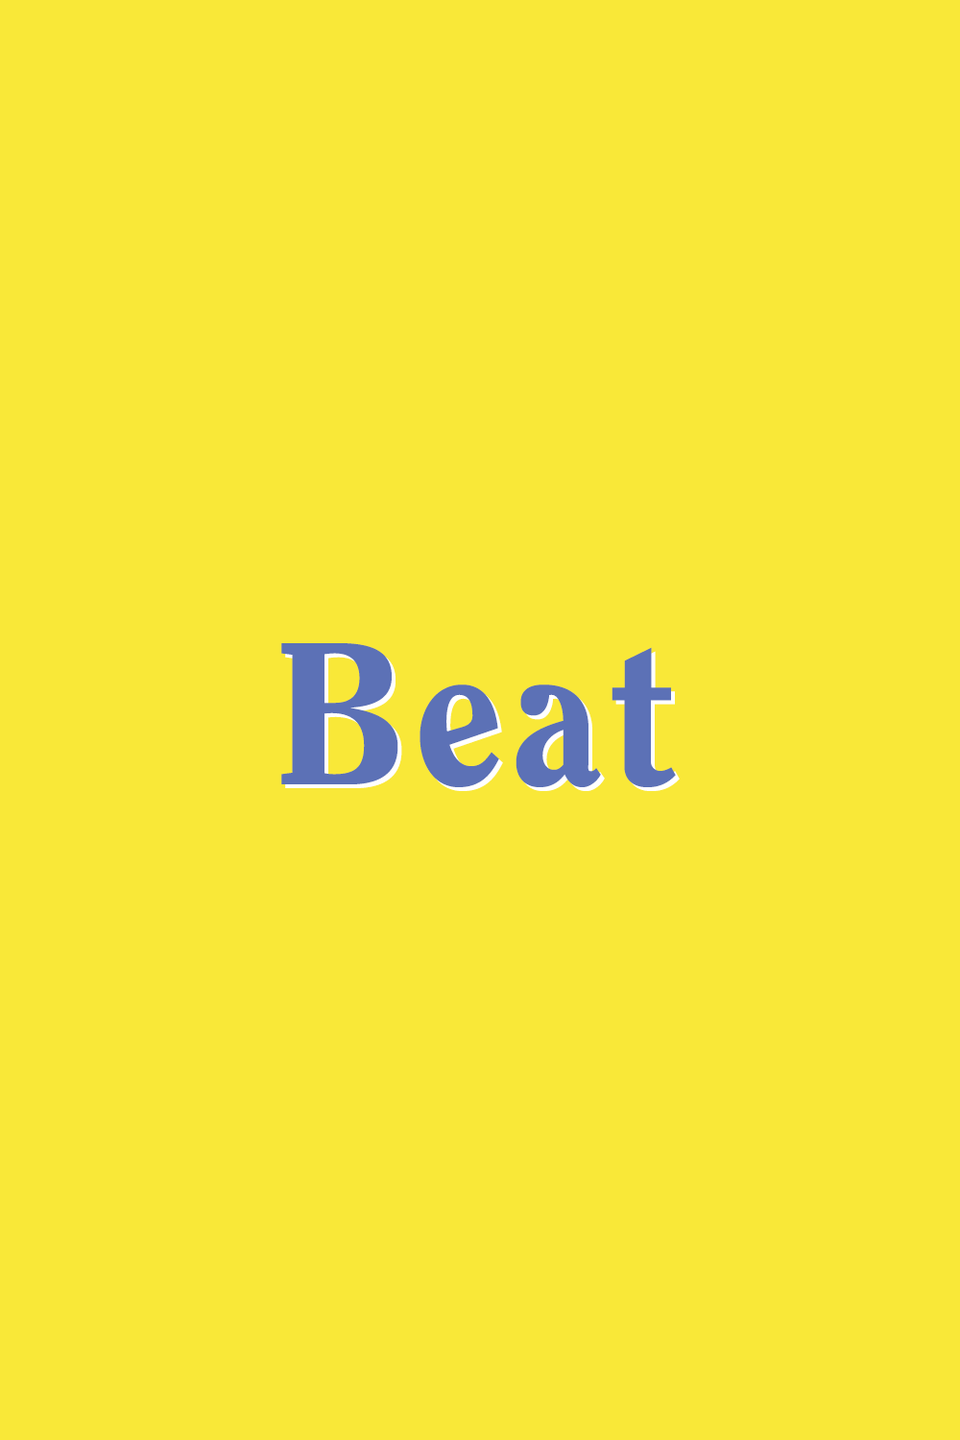 "<p>This slang term isn't as aggressive as it sounds. ""Beat"" can be used as a verb or adjective, and it's all about beauty. To beat is to <a href=""https://www.oprahdaily.com/beauty/skin-makeup/a22985669/how-to-apply-highlighter/"" rel=""nofollow noopener"" target=""_blank"" data-ylk=""slk:apply makeup"" class=""link rapid-noclick-resp"">apply makeup</a>, and if someone is described as being ""beat,"" it means they either applied their makeup well, or just applied a lot of it. Used in a sentence as a verb: ""I have to meet the parents tonight so I'm going to beat my face."" You'll find examples of ""beat"" in the <a href=""https://www.oprahdaily.com/life/a23601818/queer-cultural-appropriation-definition/"" rel=""nofollow noopener"" target=""_blank"" data-ylk=""slk:ball culture"" class=""link rapid-noclick-resp"">ball culture</a> documentary<em> <a href=""https://www.amazon.com/Paris-Burning-Jennie-Livingston/dp/B007QJ89VU?tag=syn-yahoo-20&ascsubtag=%5Bartid%7C10063.g.36061267%5Bsrc%7Cyahoo-us"" rel=""nofollow noopener"" target=""_blank"" data-ylk=""slk:Paris Is Burning"" class=""link rapid-noclick-resp"">Paris Is Burning</a>.</em></p>"